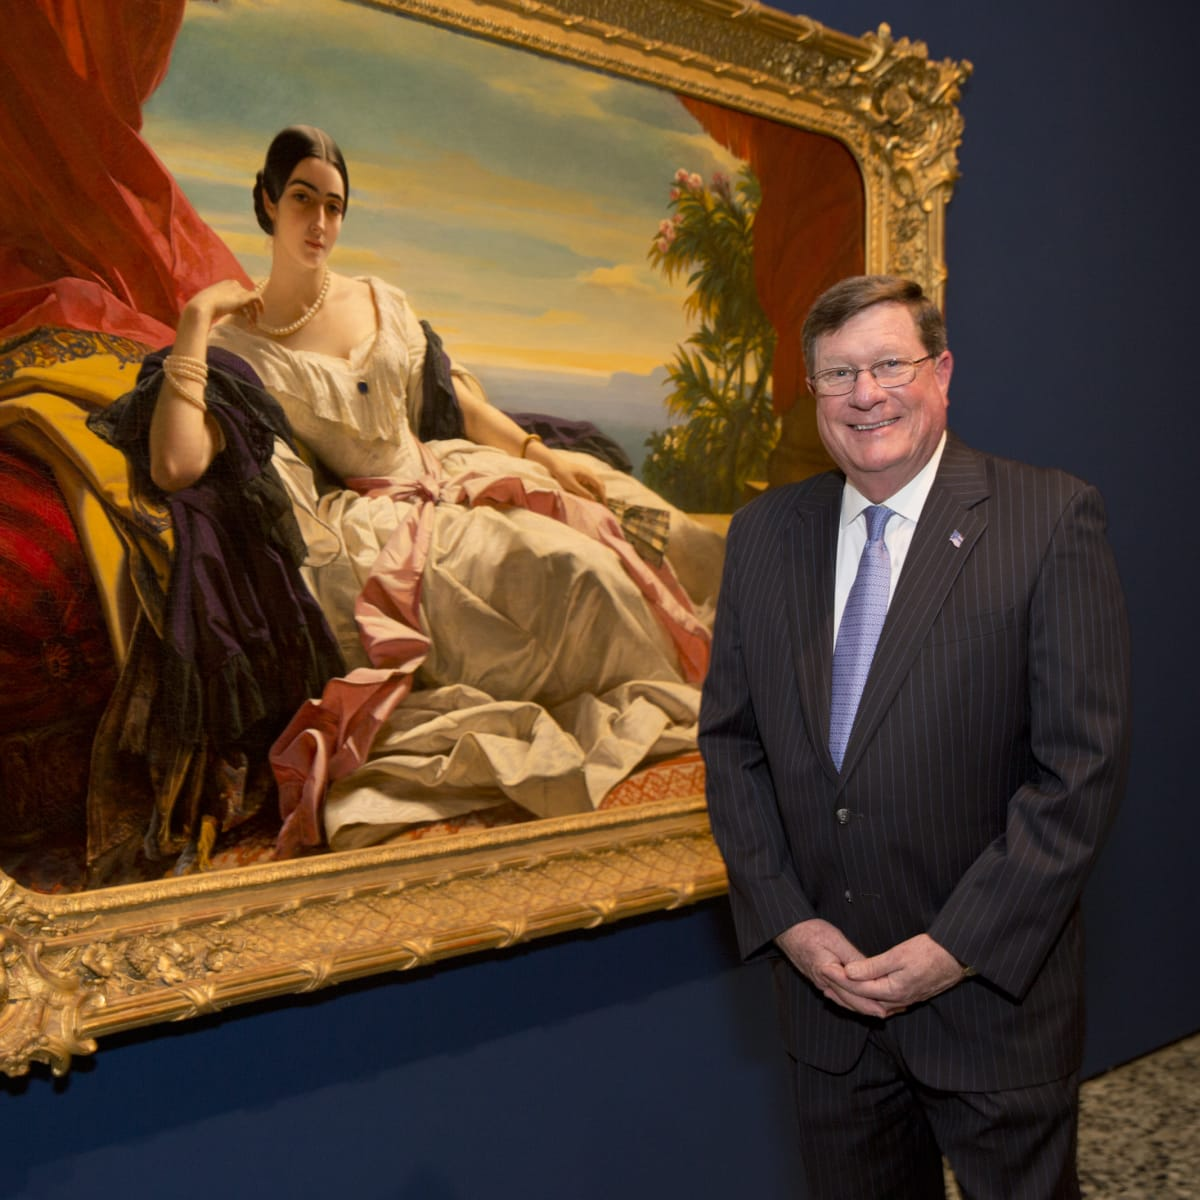 MFAH High Society, 4/16, Jim Weaver